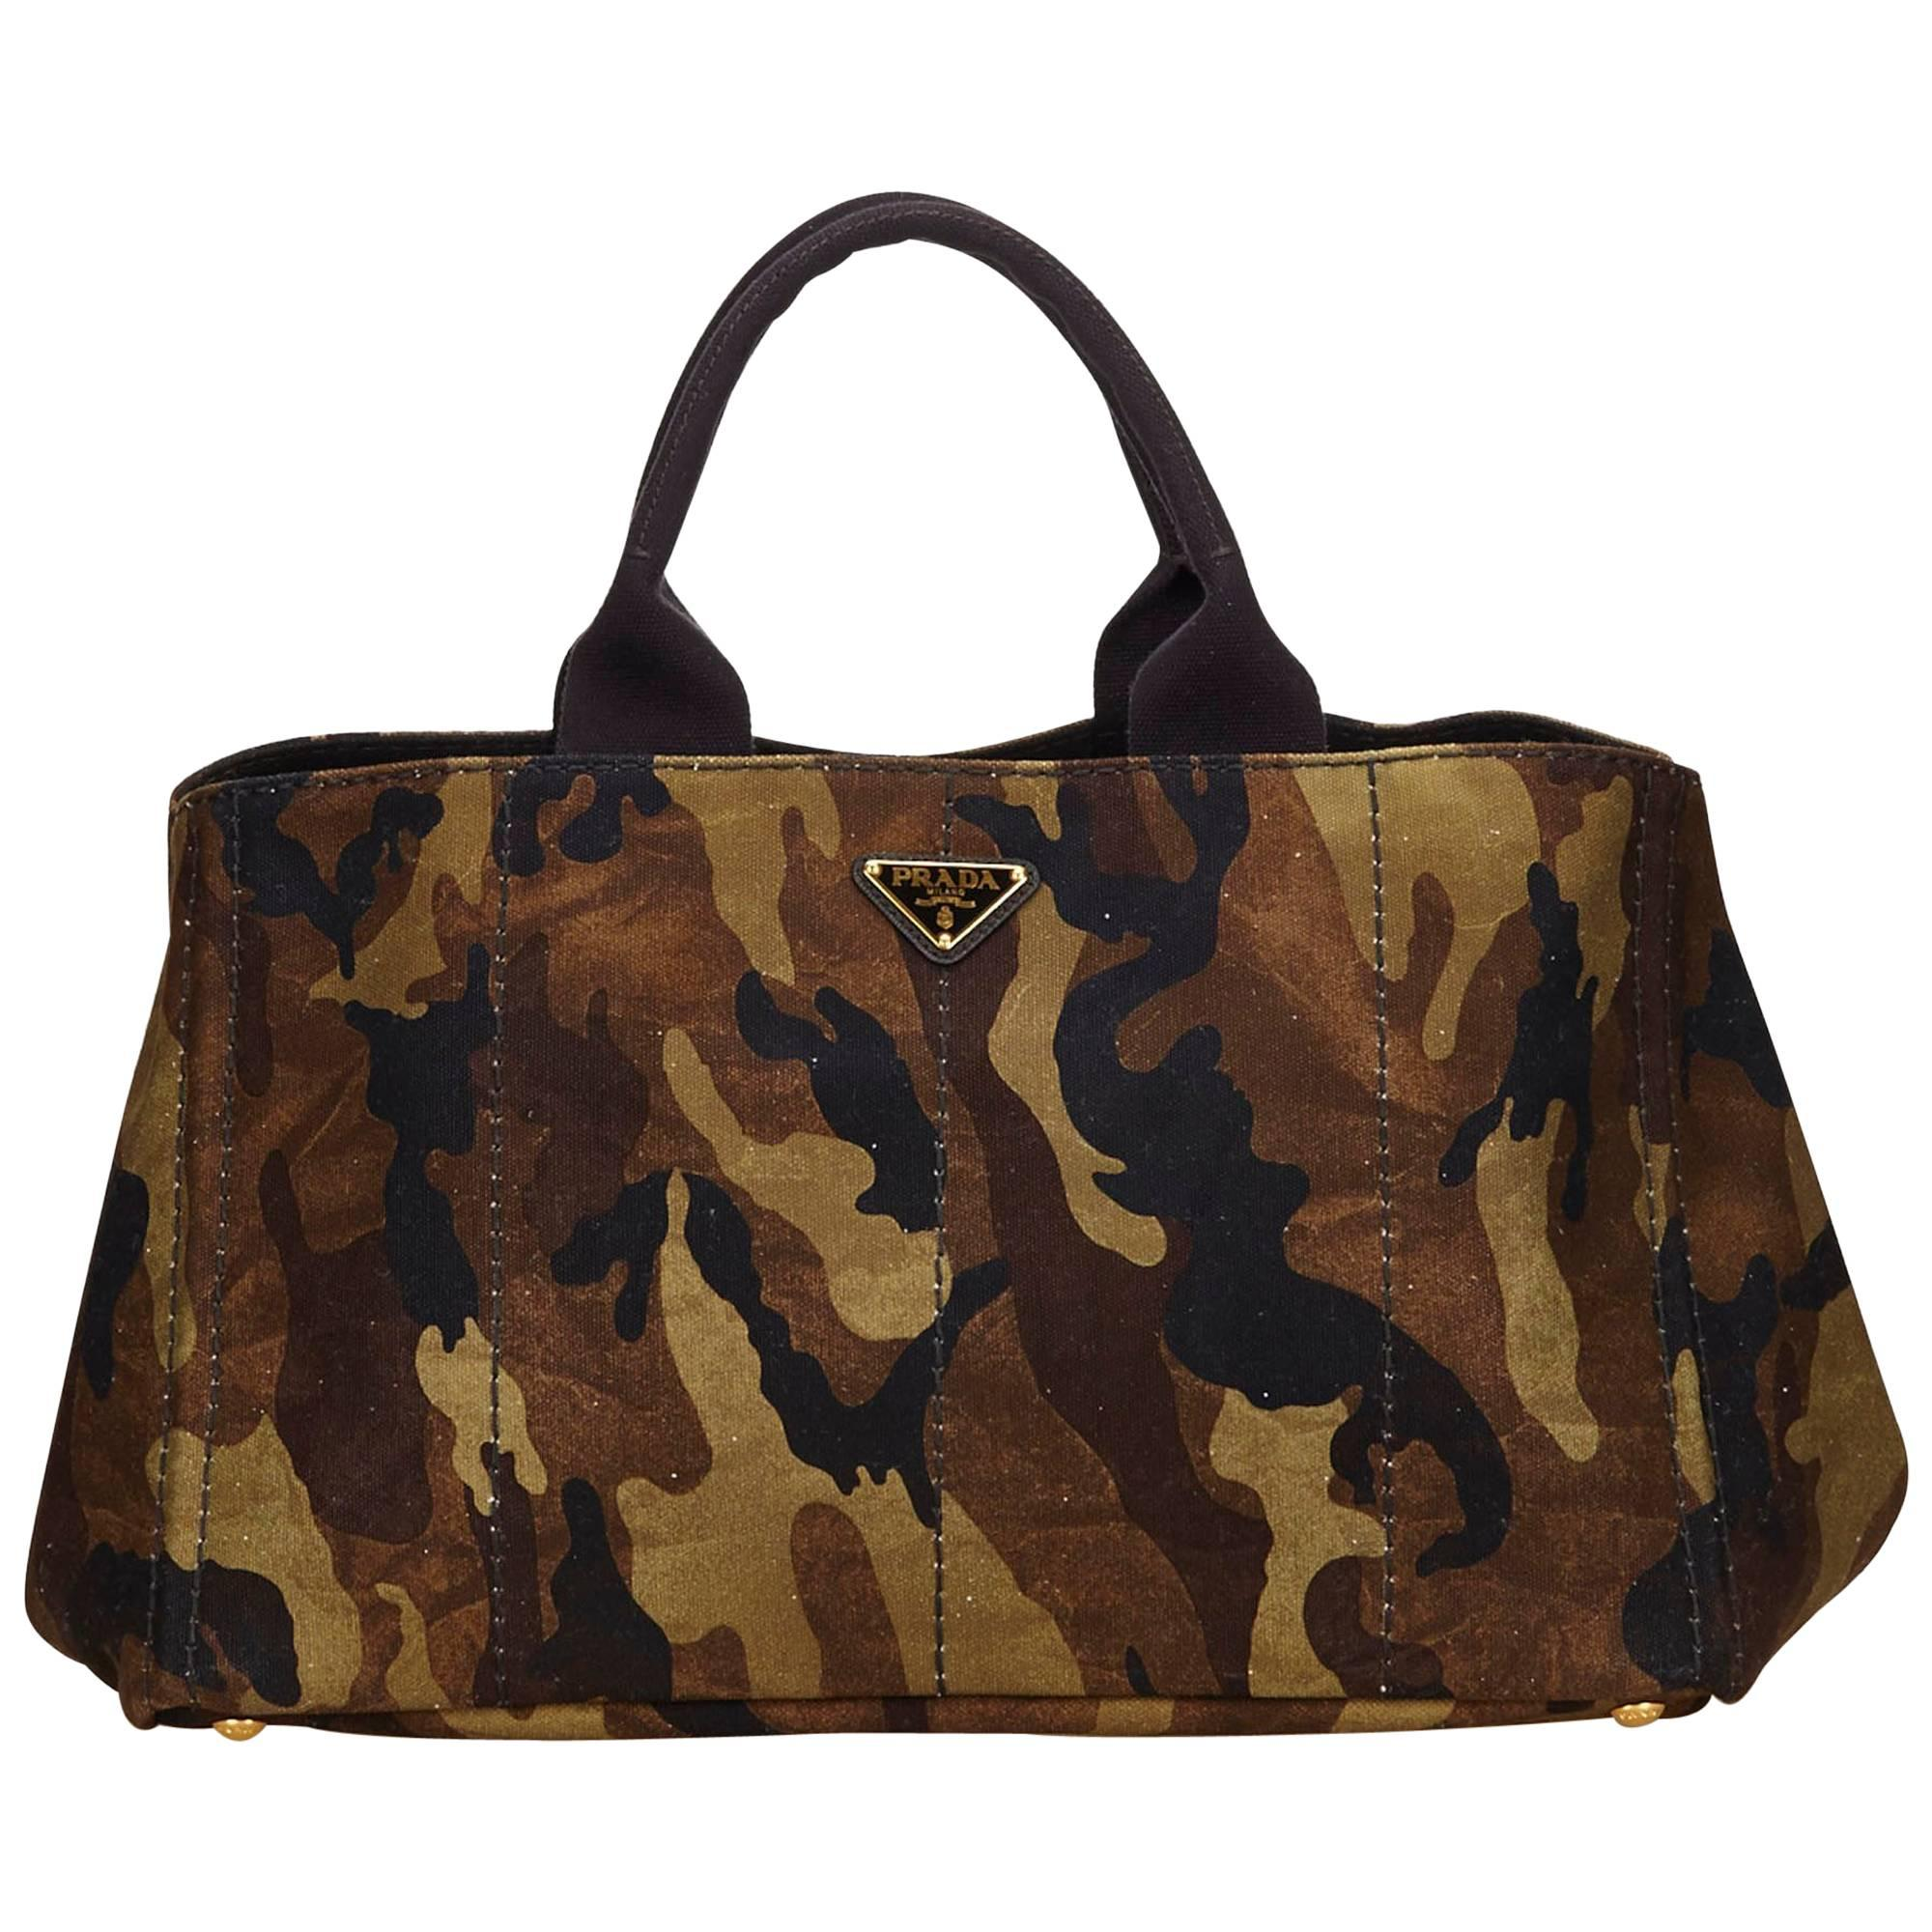 32d9644528fa amazon prada olive green nylon handbag efd8c 36a00  usa prada green x brown  camouflage canvas canapa tote for sale 9b29f 2e787